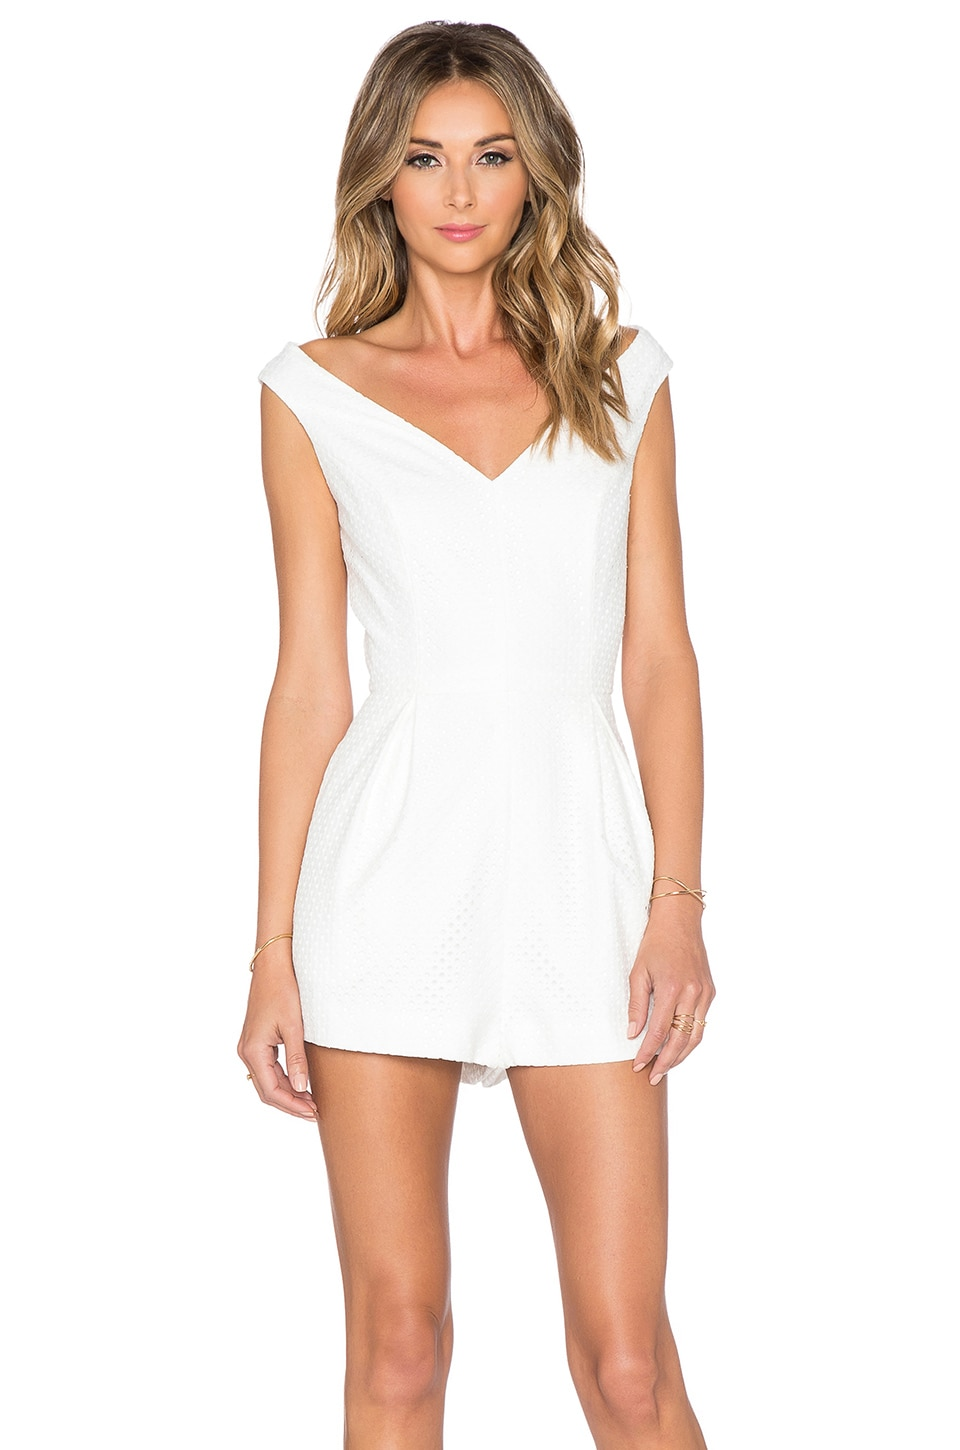 keepsake If you Leave Playsuit in Ivory Lace